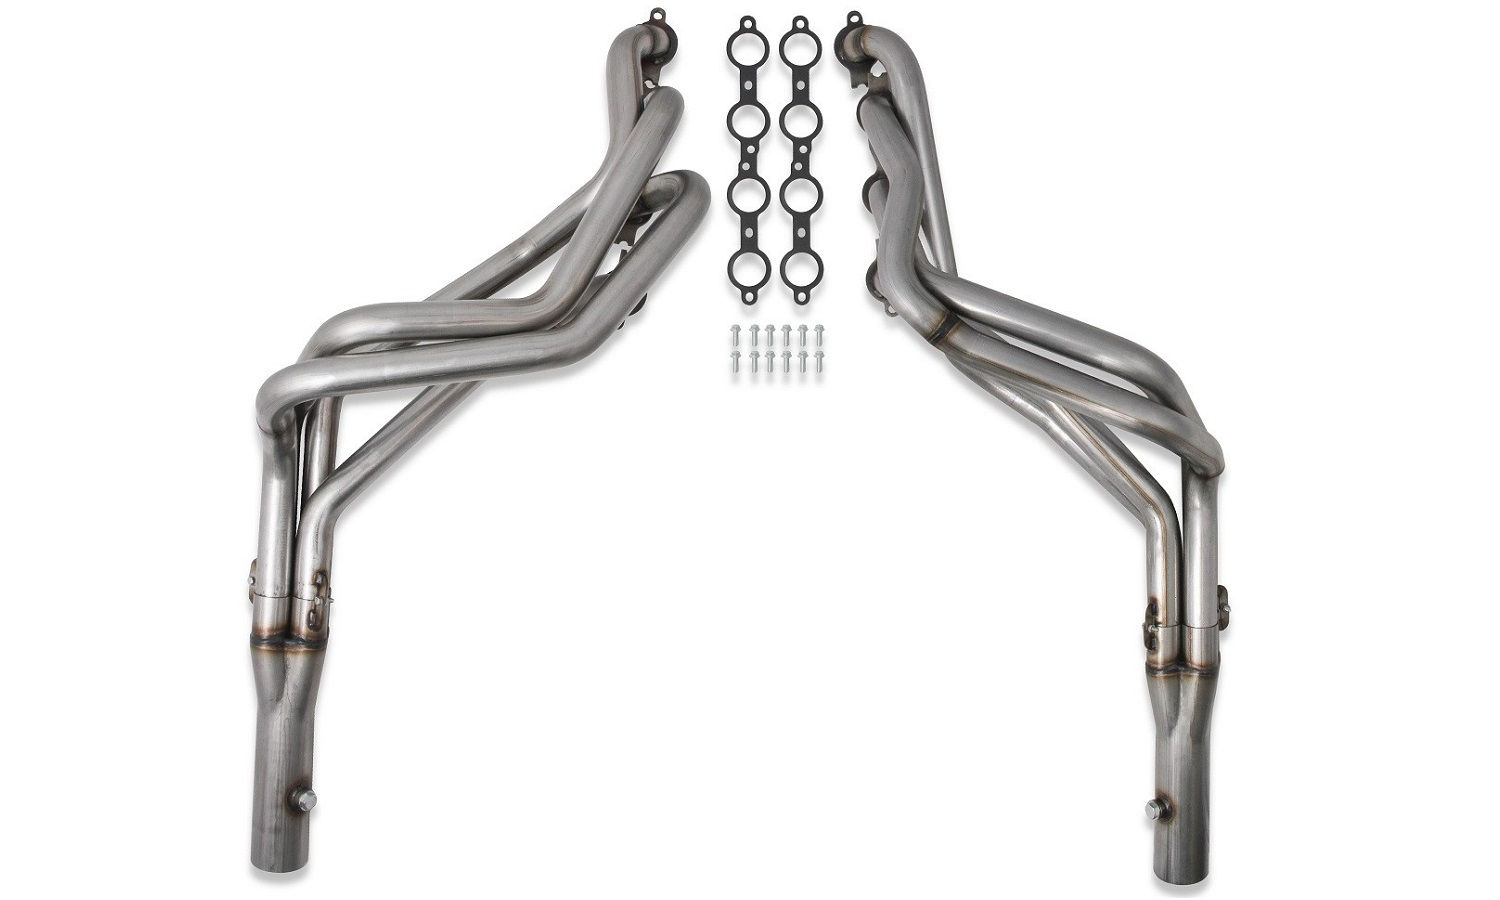 Holley Releases Flowtech S-10 LS Swap Long Tube Headers